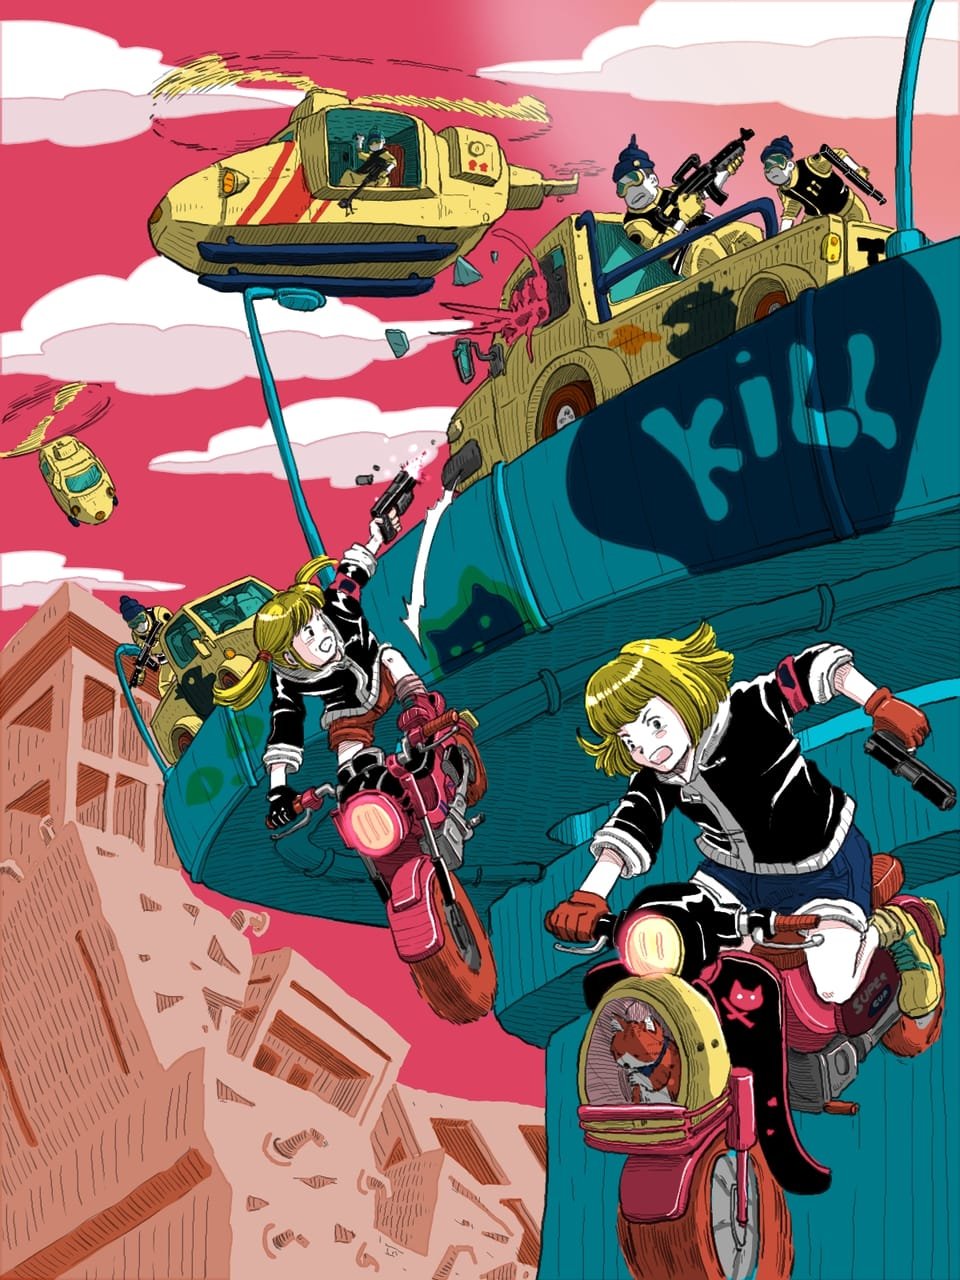 My friend me and our  gang fight in dystopia world Illust of Wutikai action November2020_Contest:Cyberpunk friend motorbike Dystopia Japanese_style cyberpunk Mechanic girl Gun city fight